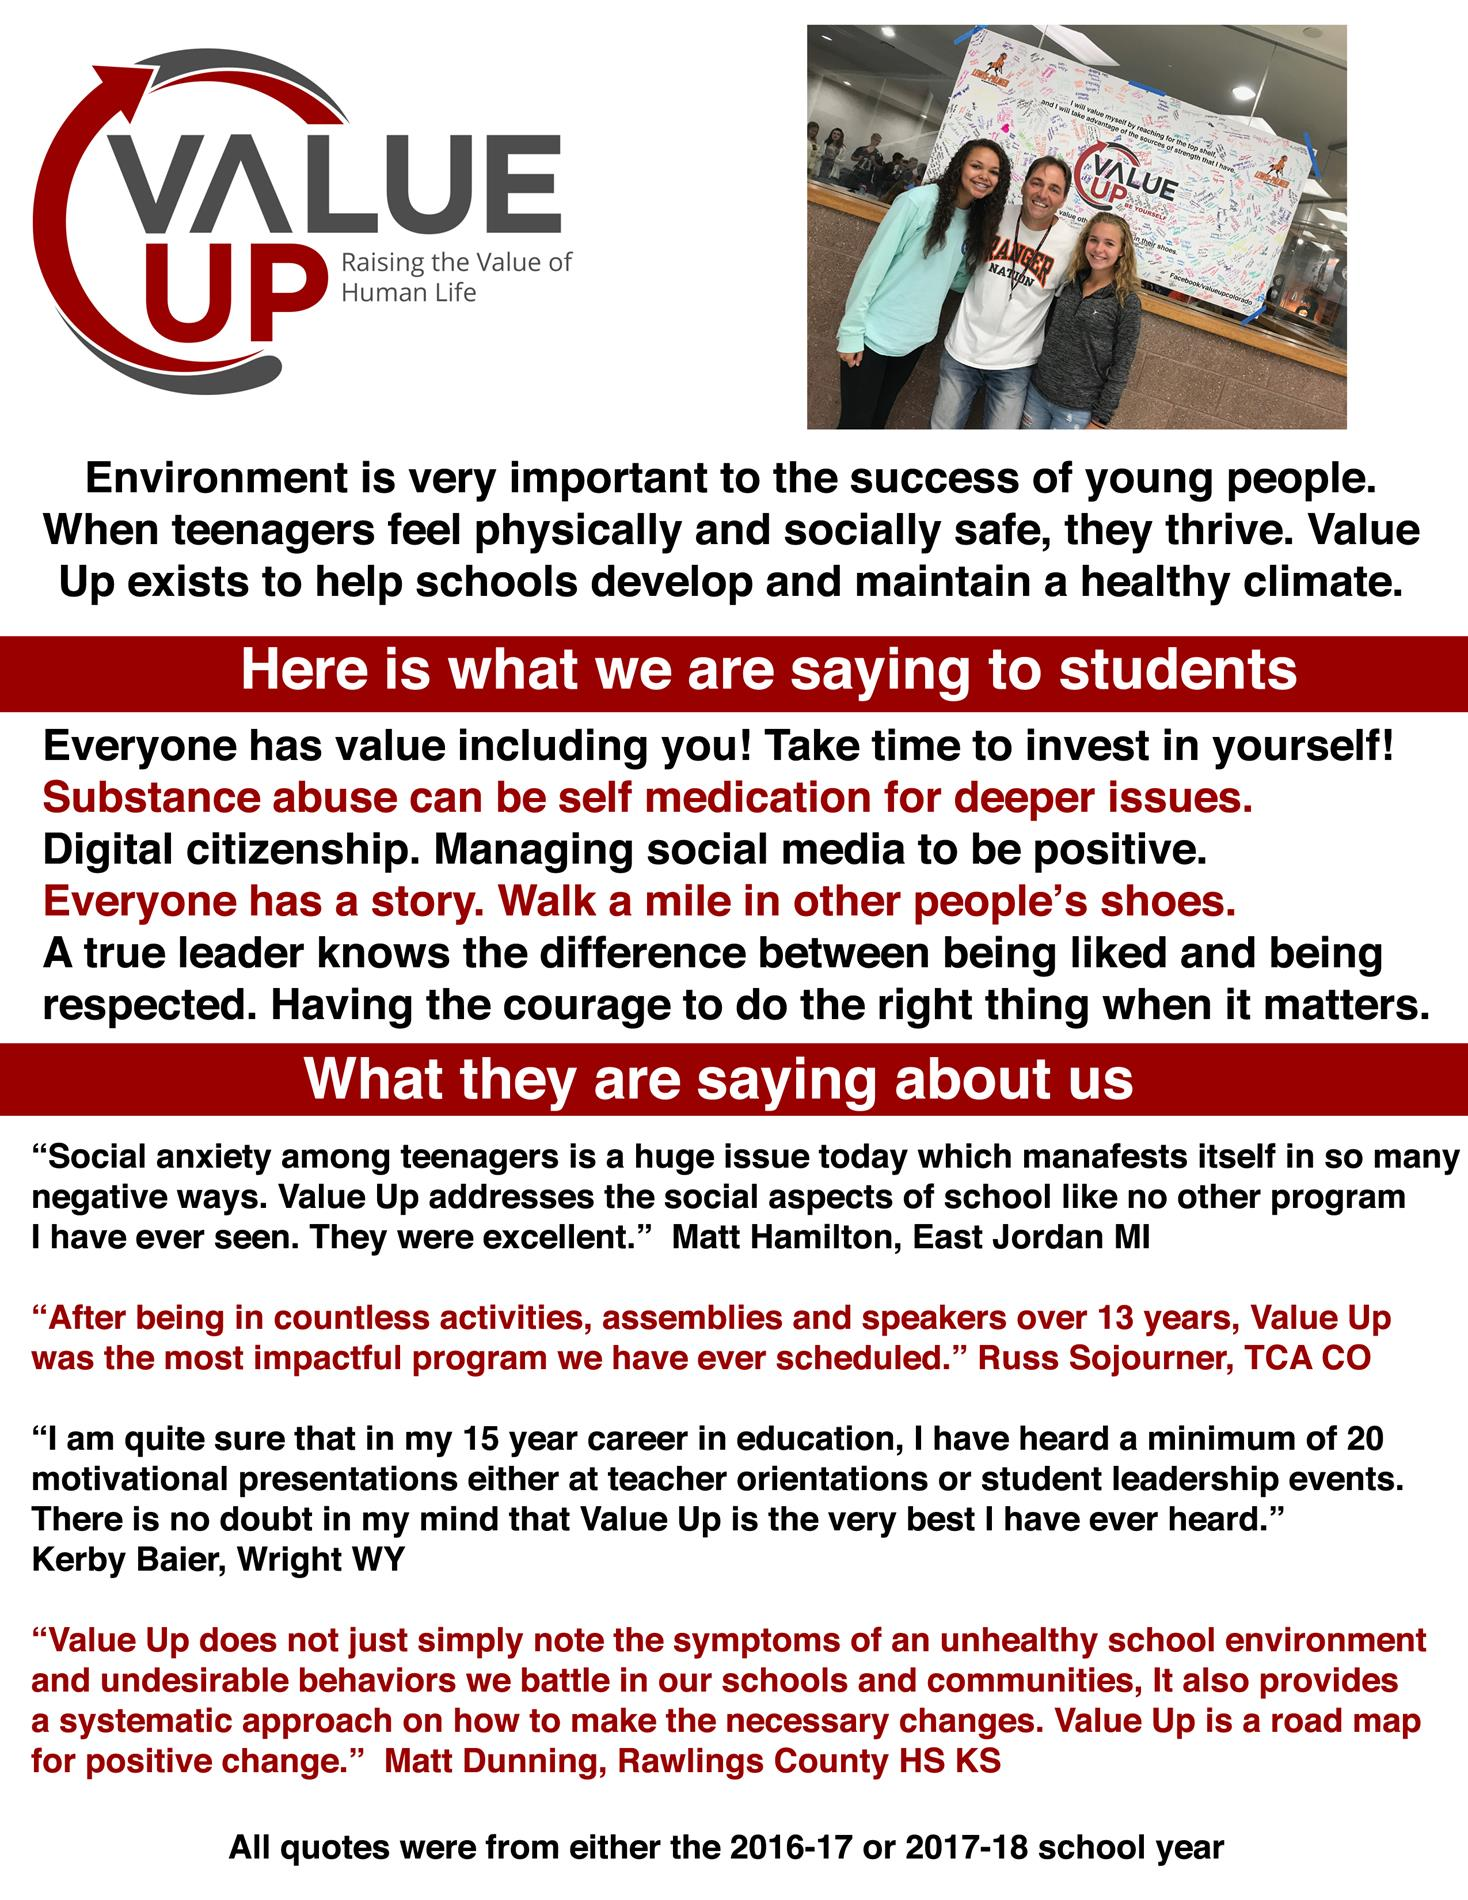 "Environment is very important to the success of young people. When teenagers feel physically and socially safe, they thrive. Value Up exists to help schools develop and maintain a healthy climate. Here is what we are saying to students Everyone has value including you! Take time to invest in yourself! Substance abuse can be self medication for deeper issues. Digital citizenship. Managing social media to be positive. Everyone has a story. Walk a mile in other people's shoes. A true leader knows the difference between being liked and being respected. Having the courage to do the right thing when it matters. What they are saying about us ""Social anxiety among teenagers is a huge issue today which manafests itself in so many negative ways. Value Up addresses the social aspects of school like no other program I have ever seen. They were excellent."" Matt Hamilton, East Jordan Ml ""After being in countless activities, assemblies and speakers over 13 years, Value Up was the most impactful program we have ever scheduled."" Russ Sojourner, TCA CO ""I am quite sure that in my 15 year career in education, I have heard a minimum of 20 motivational presentations either at teacher orientations or student leadership events. There is no doubt in my mind that Value Up is the very best I have ever heard."" Kerby Baier, Wright WY ""Value Up does not just simply note the symptoms of an unhealthy school environment and undesirable behaviors we battle in our schools and communities, It also provides a systematic approach on how to make the necessary changes. Value Up is a road map for positive change."" Matt Dunning, Rawlings County HS KS All quotes were from either the 2016-17 or 2017-18 school year"